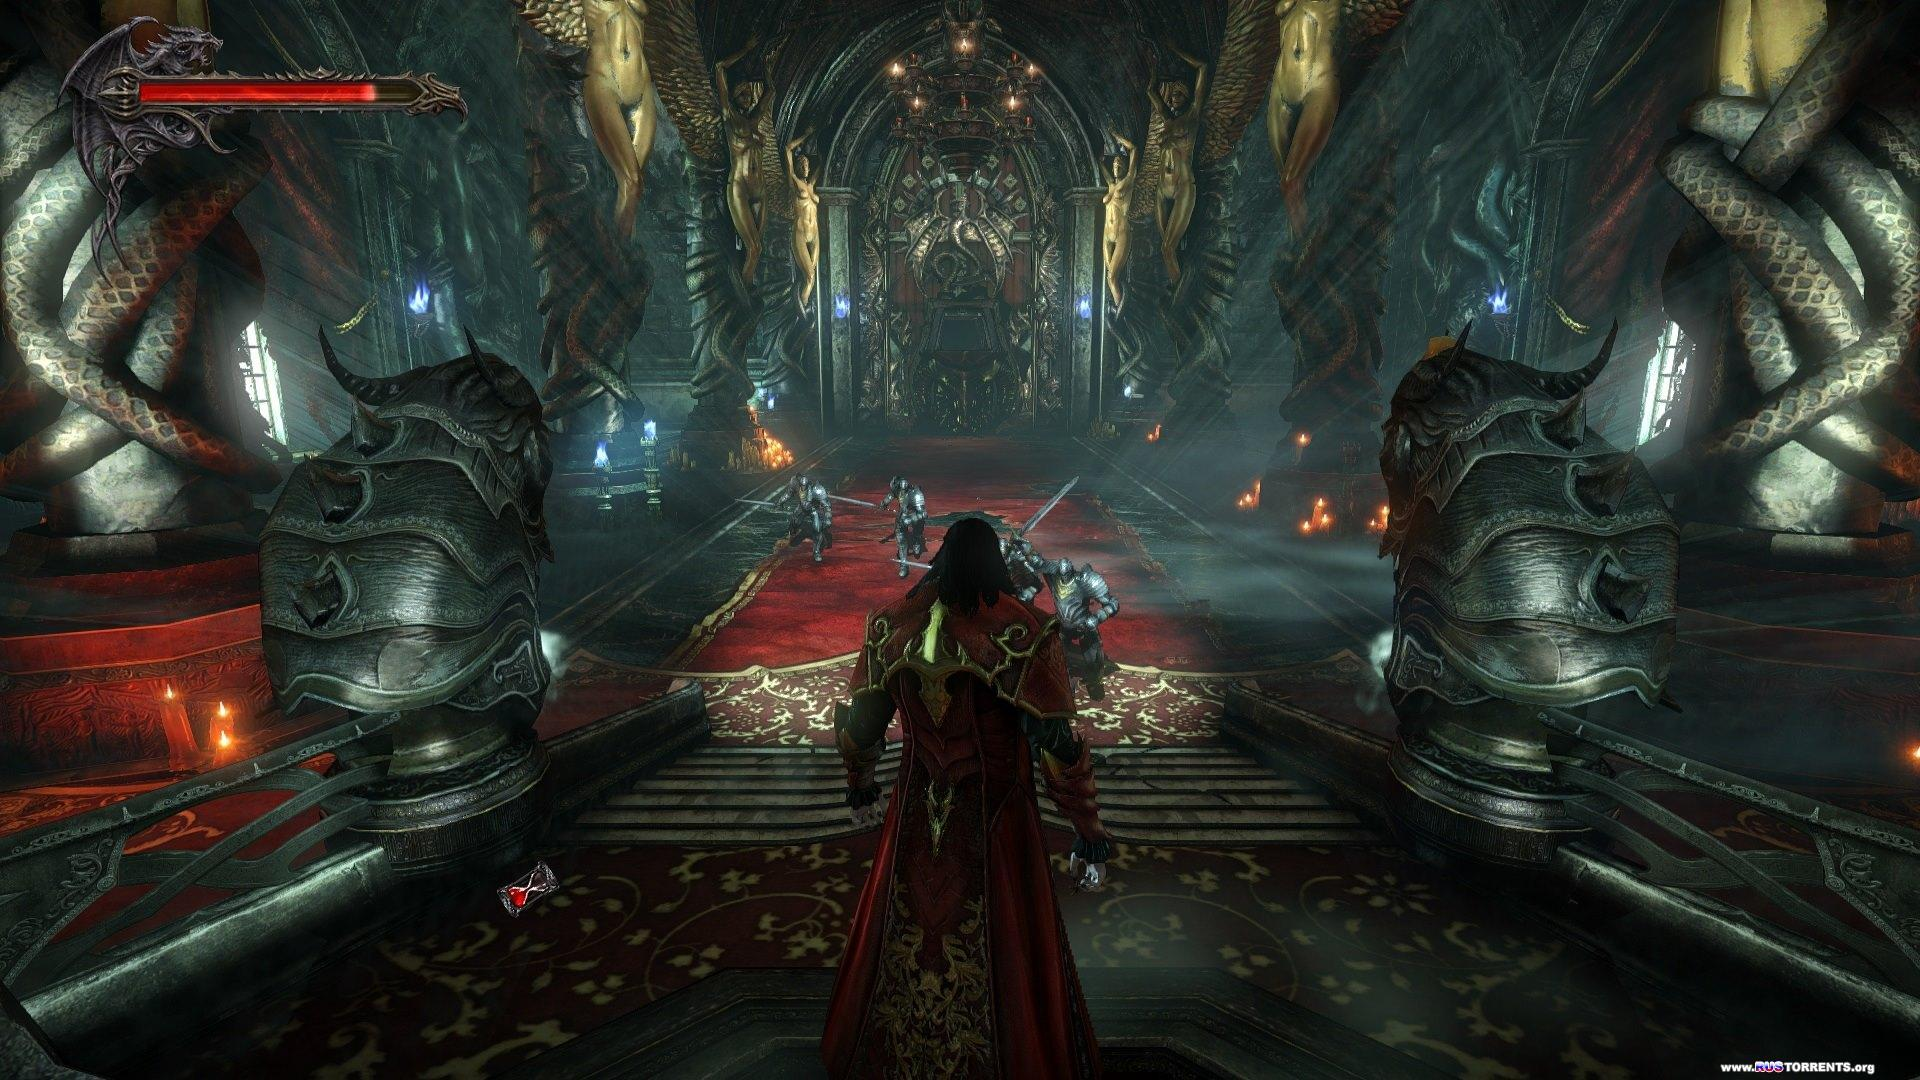 Castlevania: Lords of Shadow 2 [v 1.0.0.1u1 + 4 DLC] | PC | RePack от z10yded